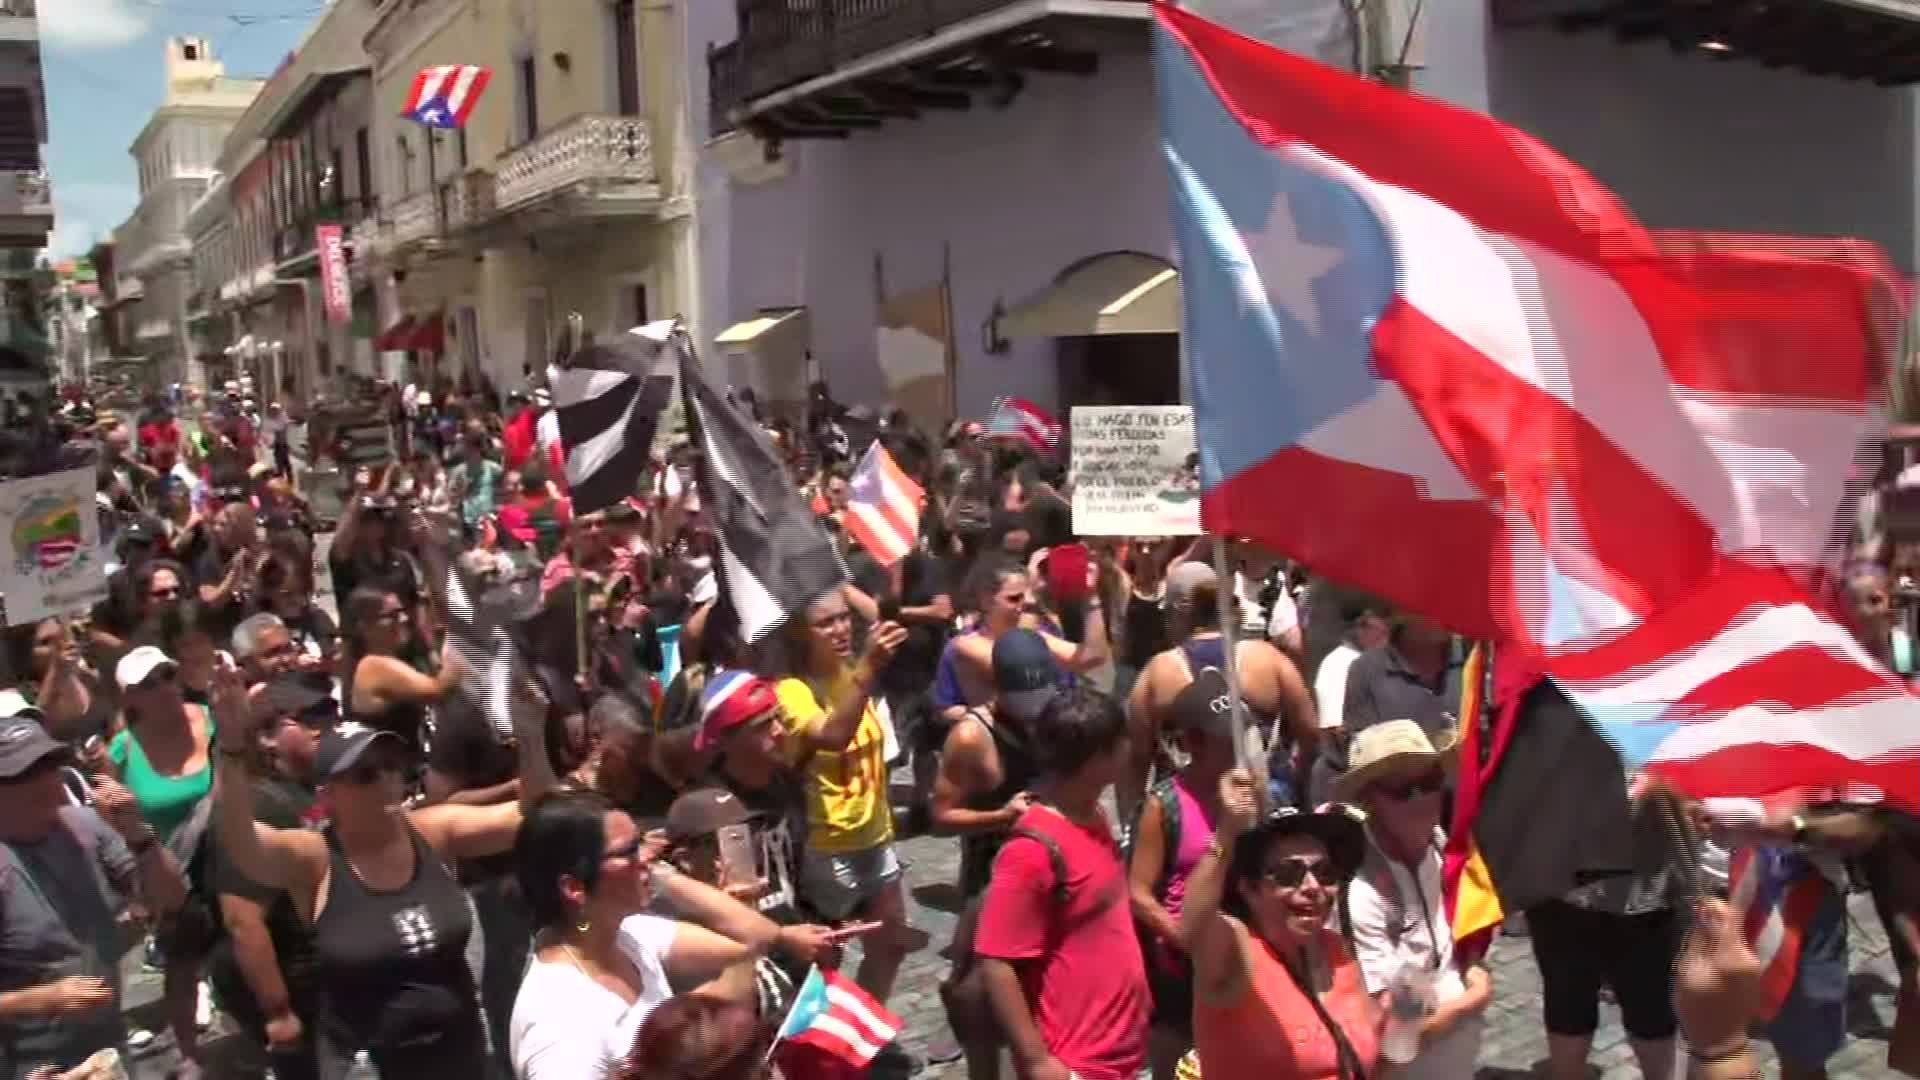 Puerto Rico protests: Demonstrations resume Saturday outside Gov. Rosselló's official residence